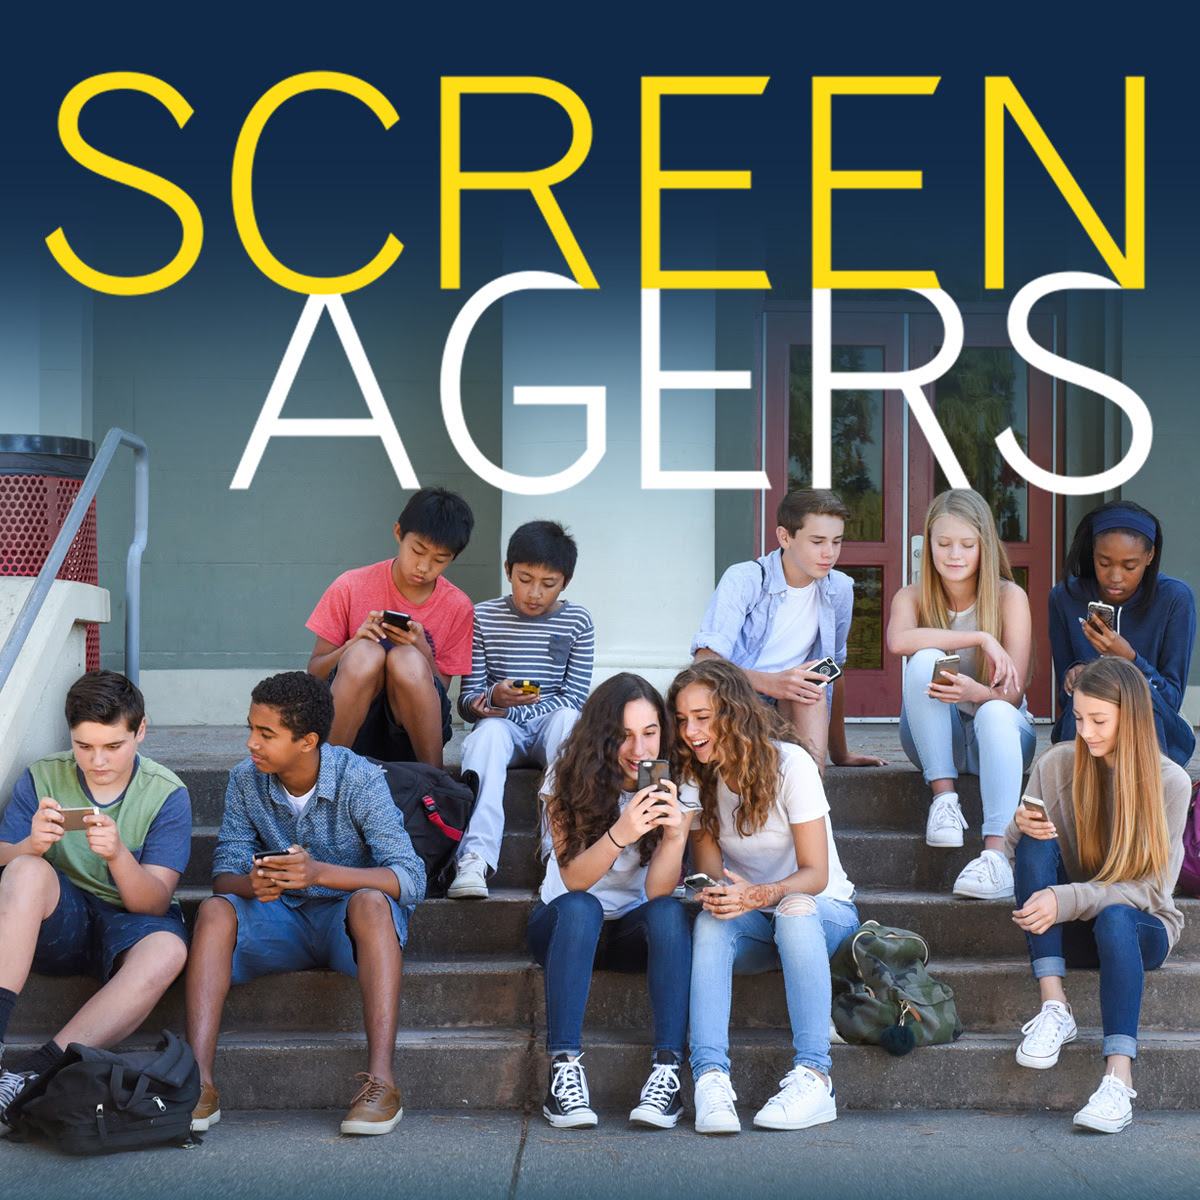 Screenagers Film Presented By Vineville Baptist Church